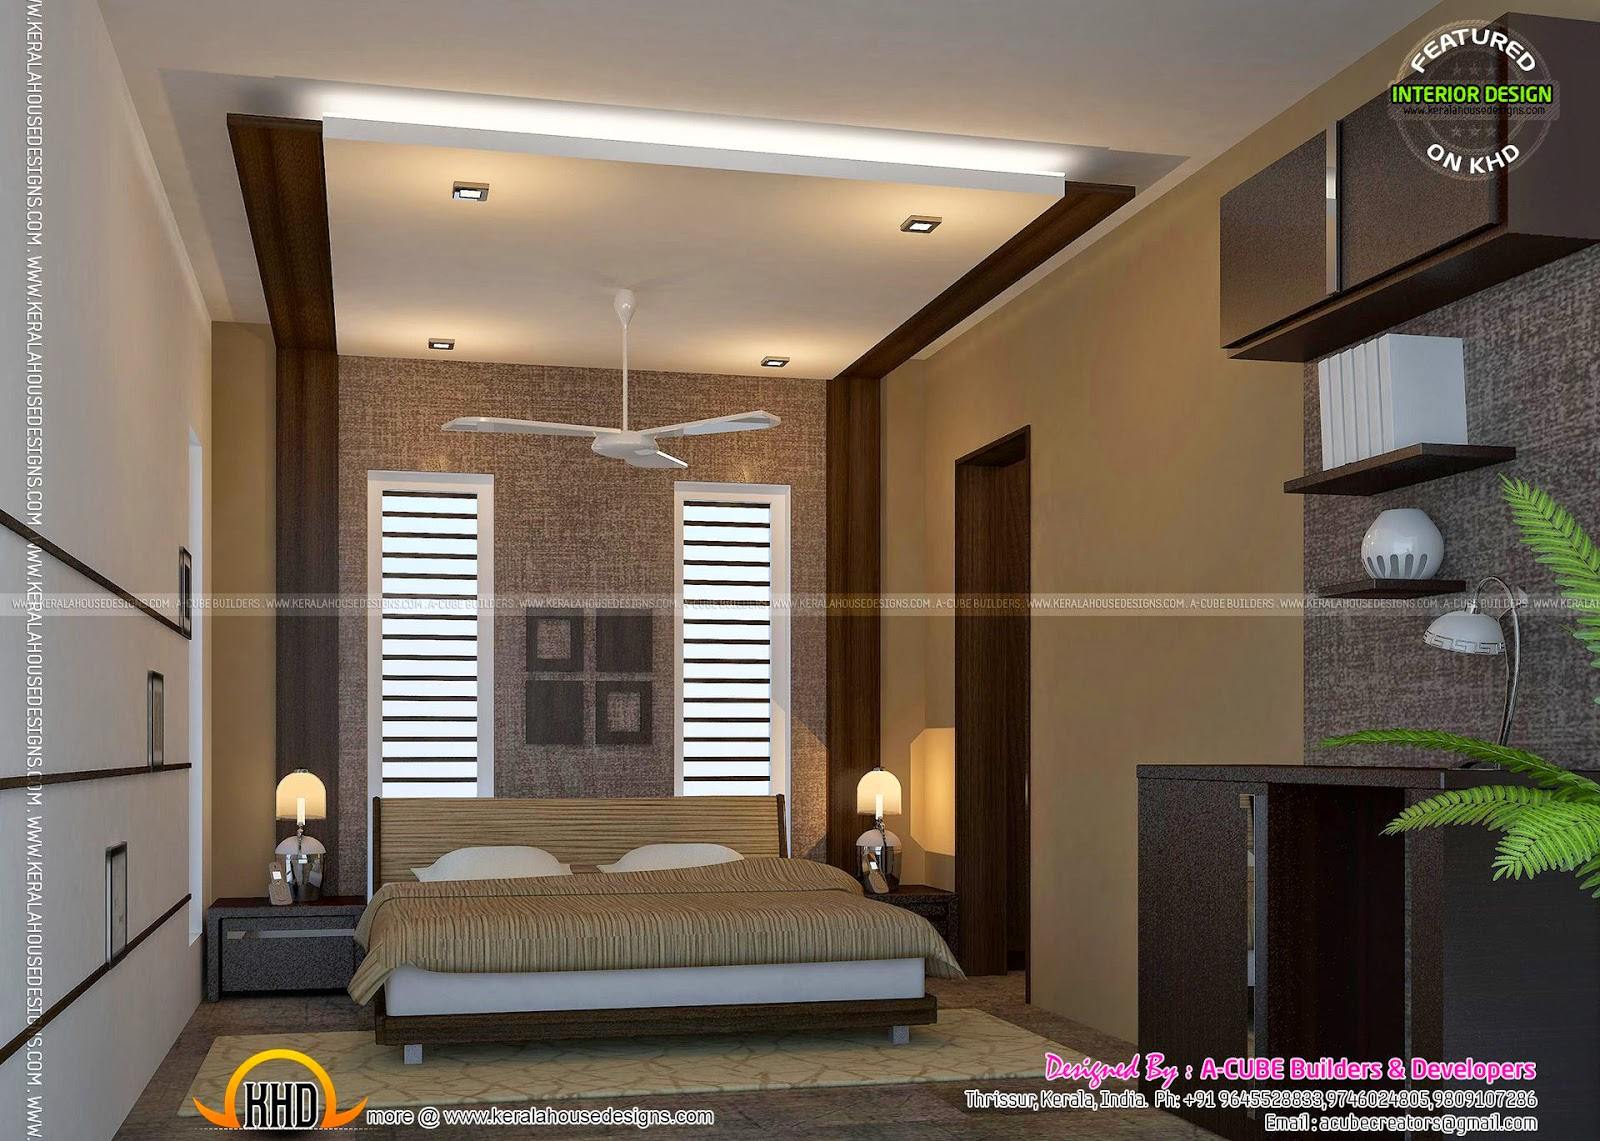 Home Interior Design Ideas Kerala: Kerala Interior Design Ideas